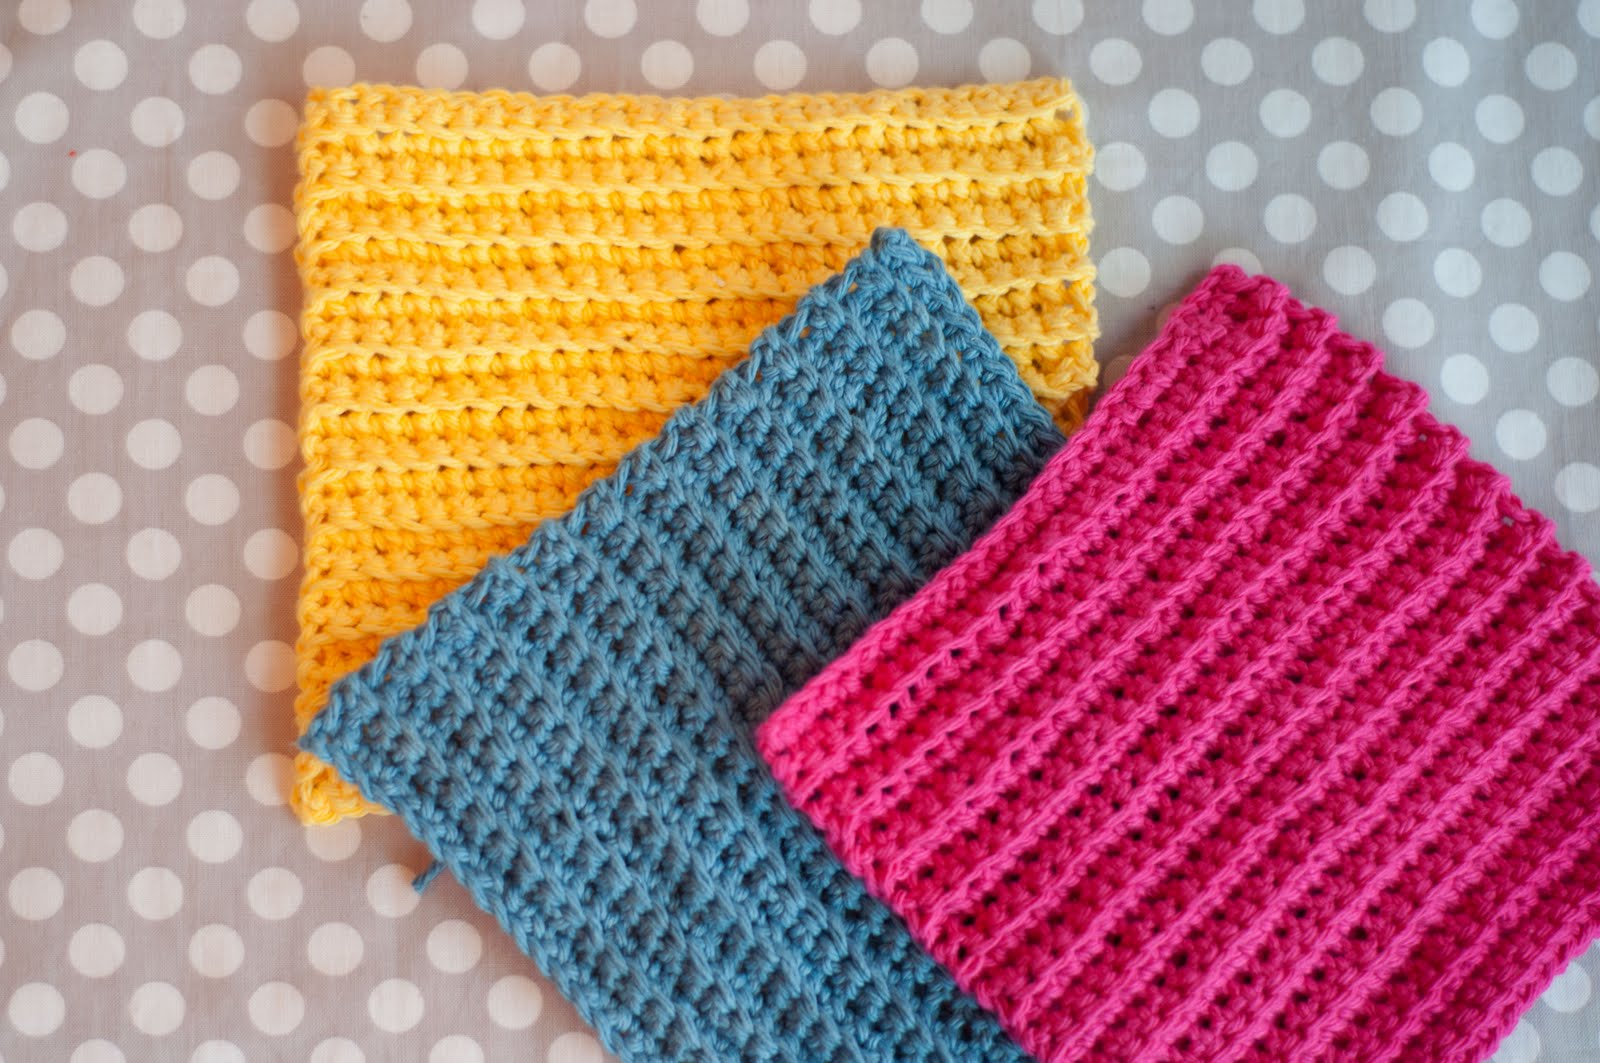 Crochet Basic Patterns : Basic Crochet Stitches: Beginner Ruffled Scarf Pattern Tip Junkie